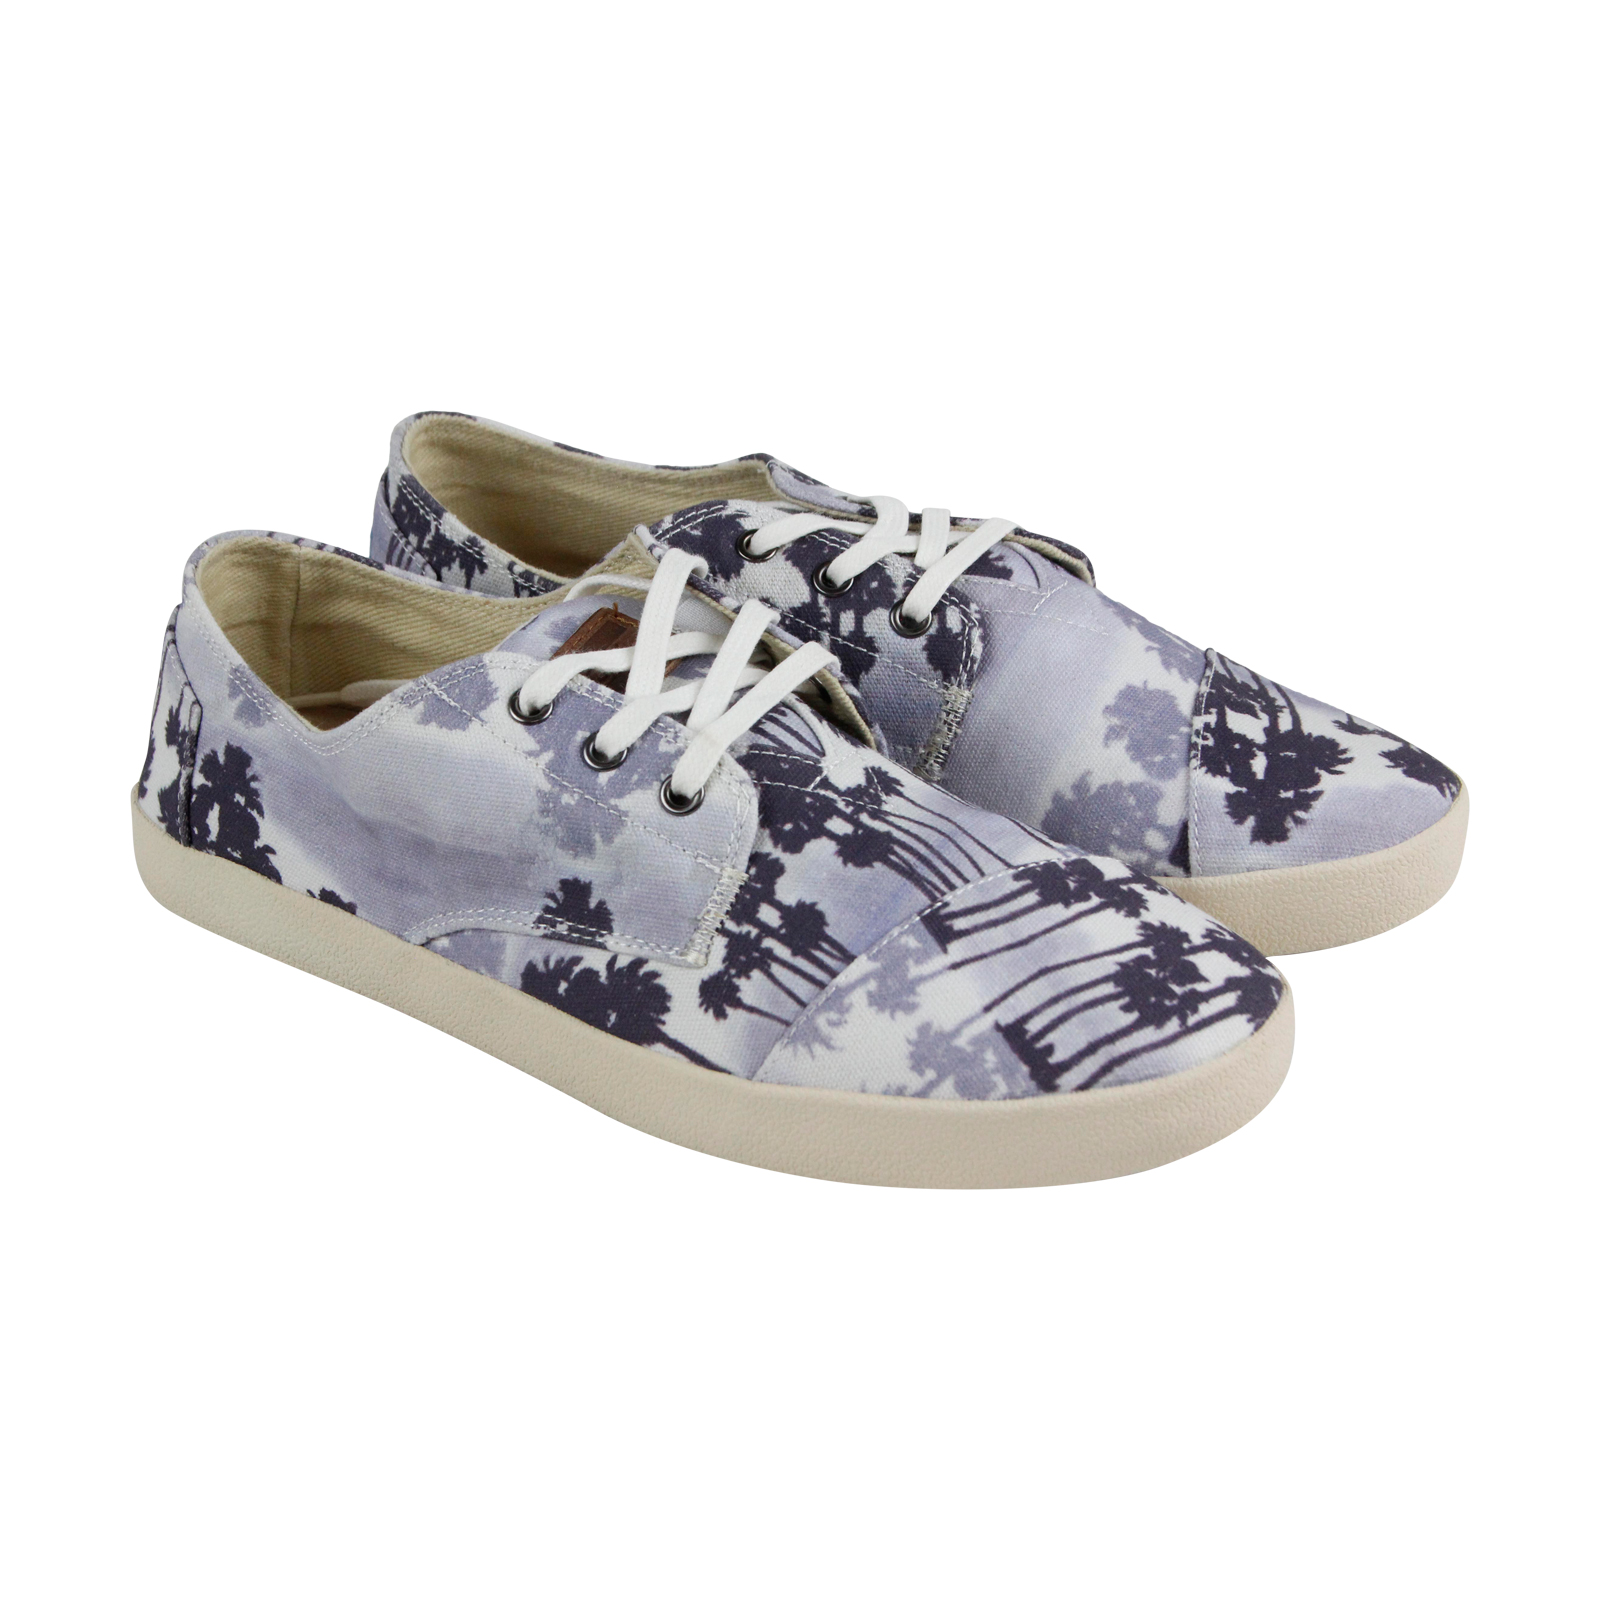 e4feeecc4fa TOMS Toms Paseos Mens Blue Canvas Lace Up Sneakers Shoes